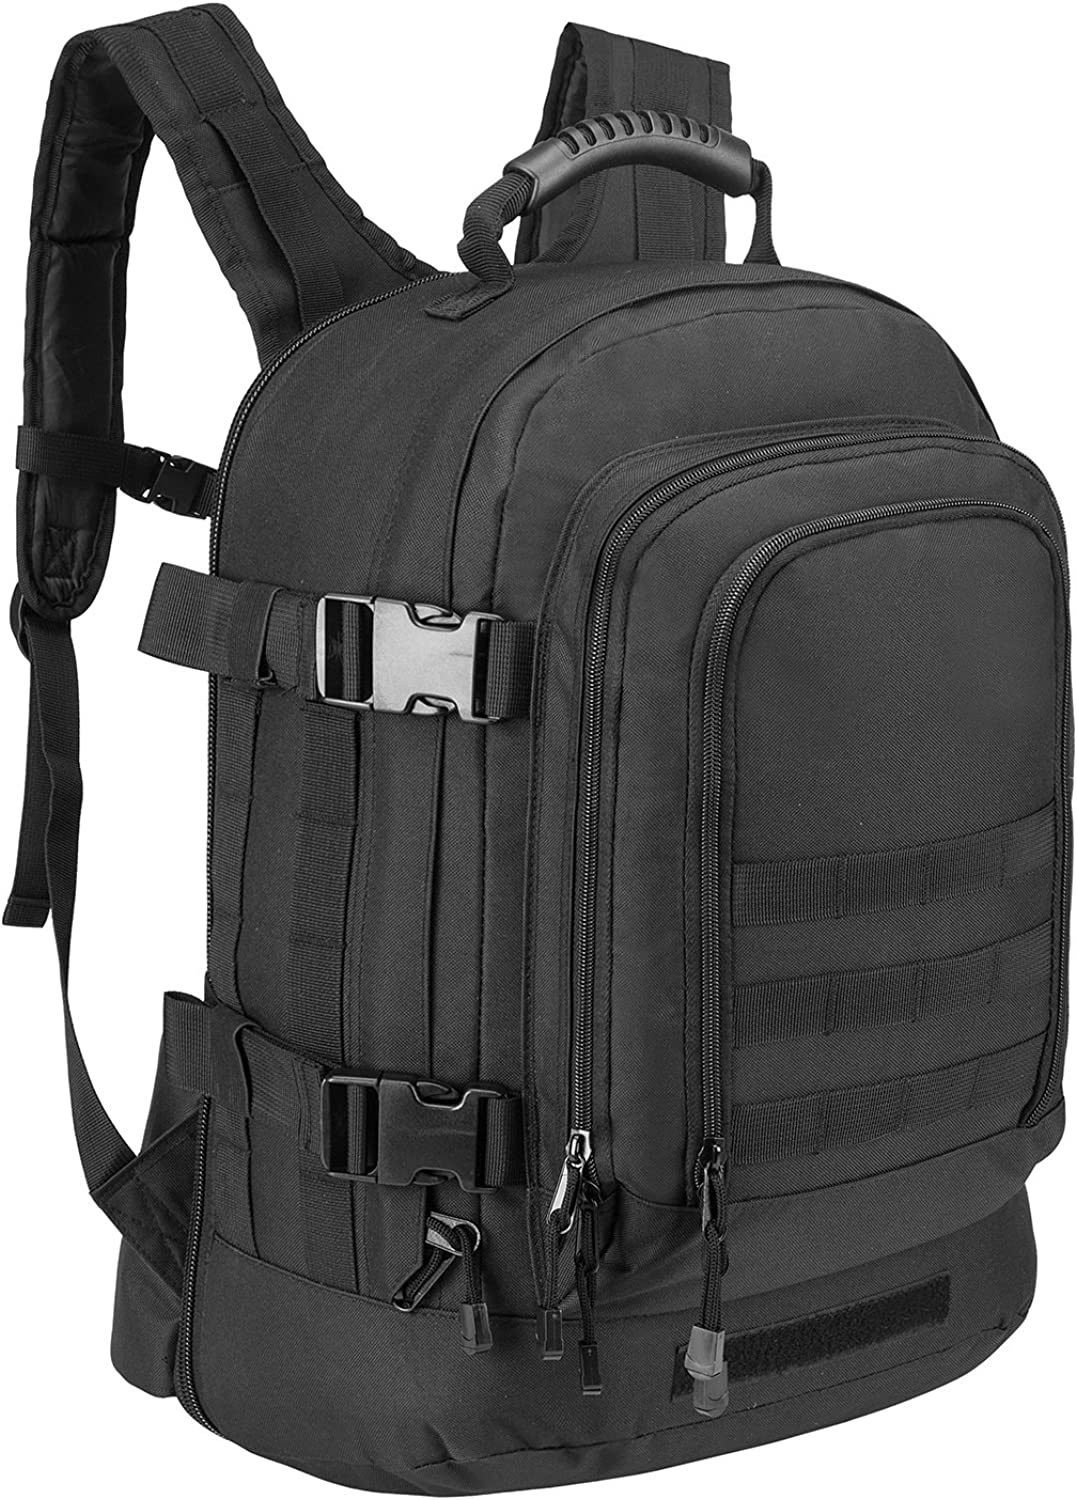 PANS Military Outdoor Backpack,School Backpack,Tactical Expandable 3-Day Travel Bag,Waterproof,Large,Molle System for Travel,School,Work,Camping,Hunting,Trekking and Hiking